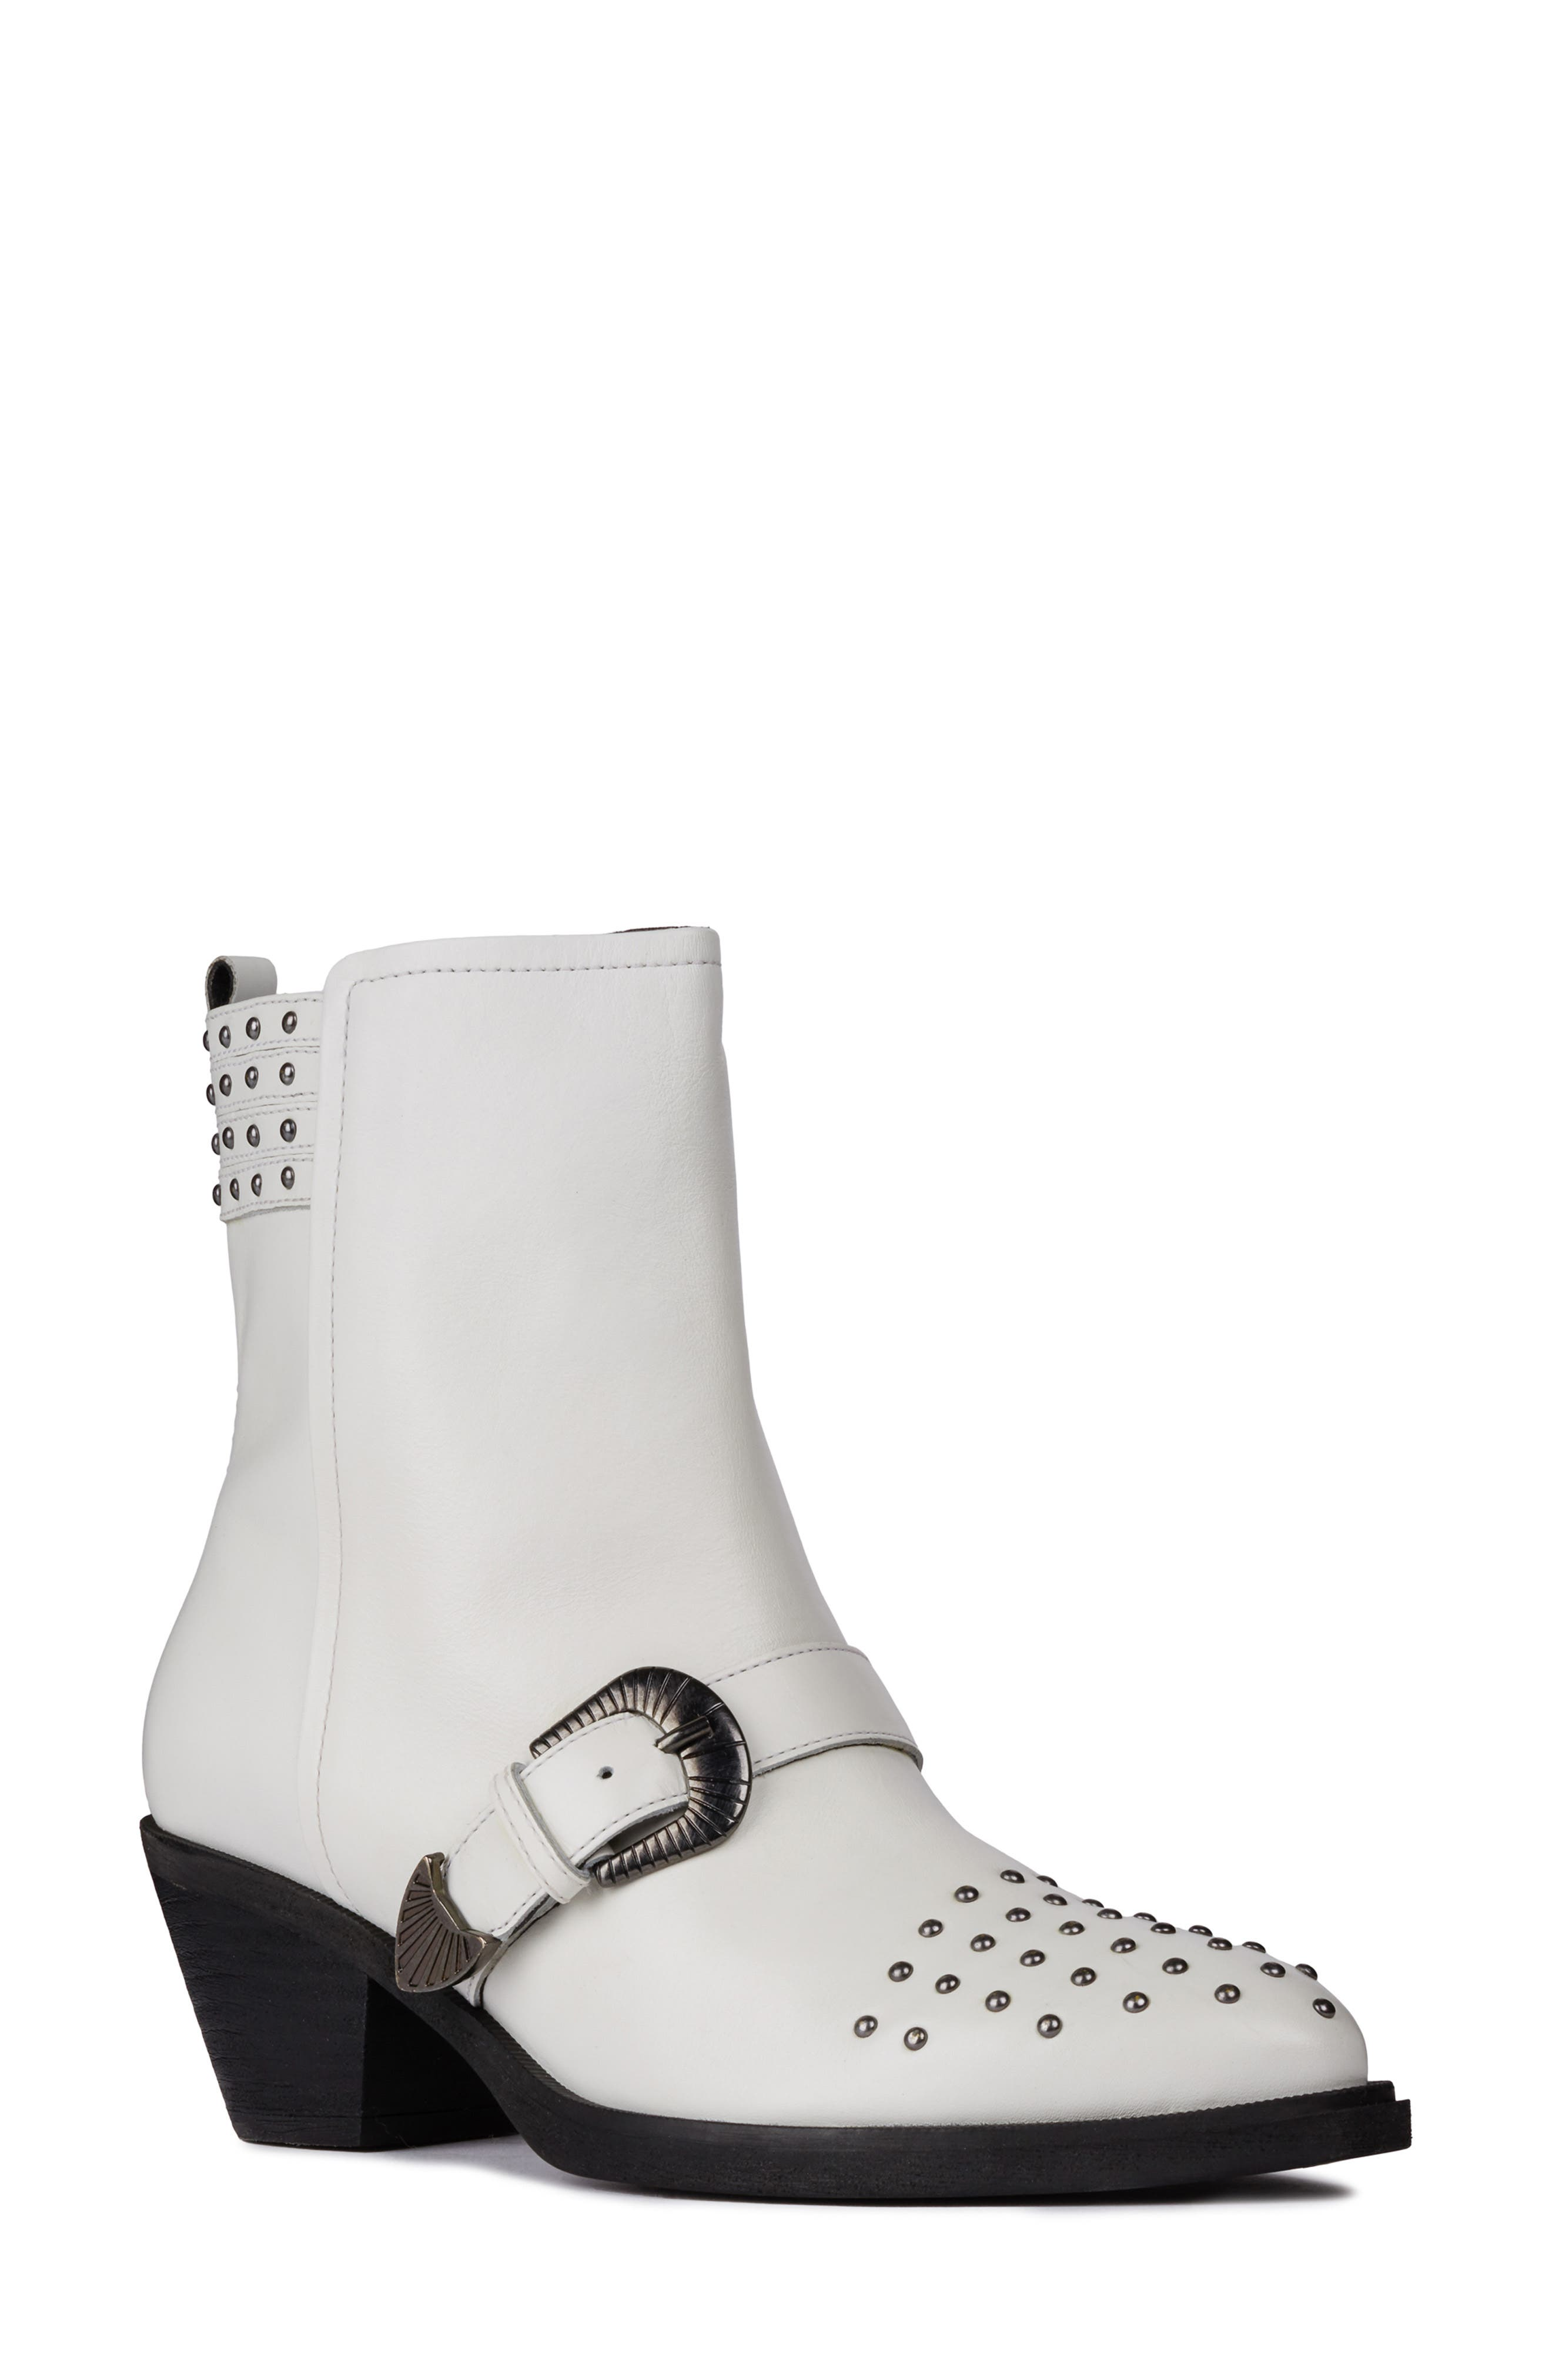 Geox Lovai Bootie, White